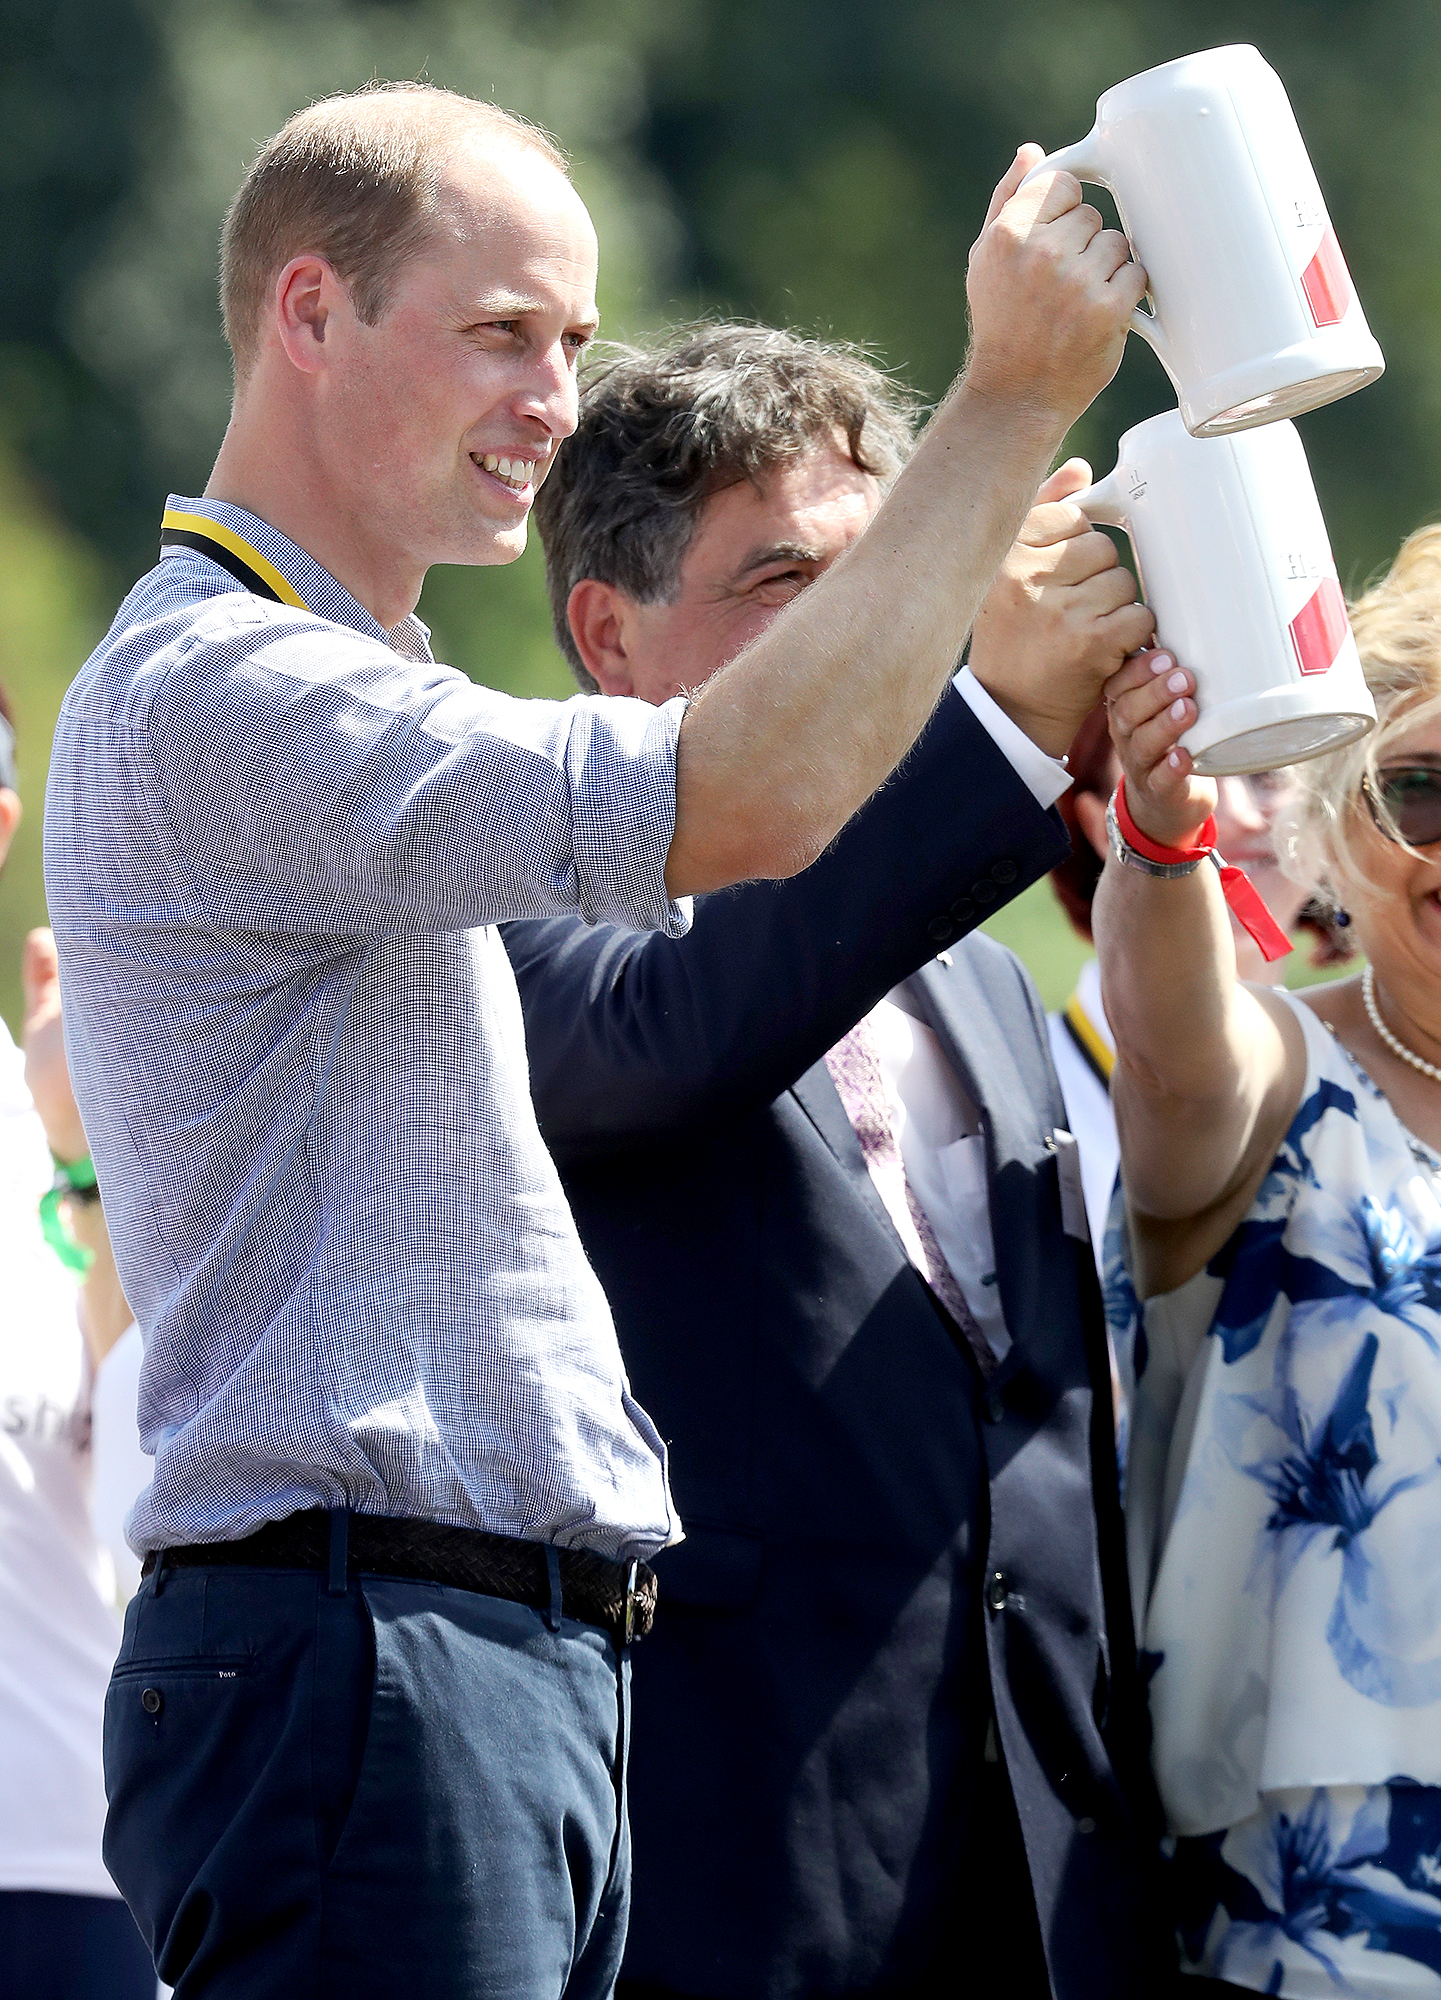 Celebrating-a-Job-Well-Done-prince-william-beer - The Duke of Cambridge toasted with a beer in Heidelberg, Germany, after participating in a rowing race between the twinned town of Cambridge and Heidelberg and against Catherine, Duchess of Cambridge on the second day of the couple's official visit to Germany on July 20, 2017.